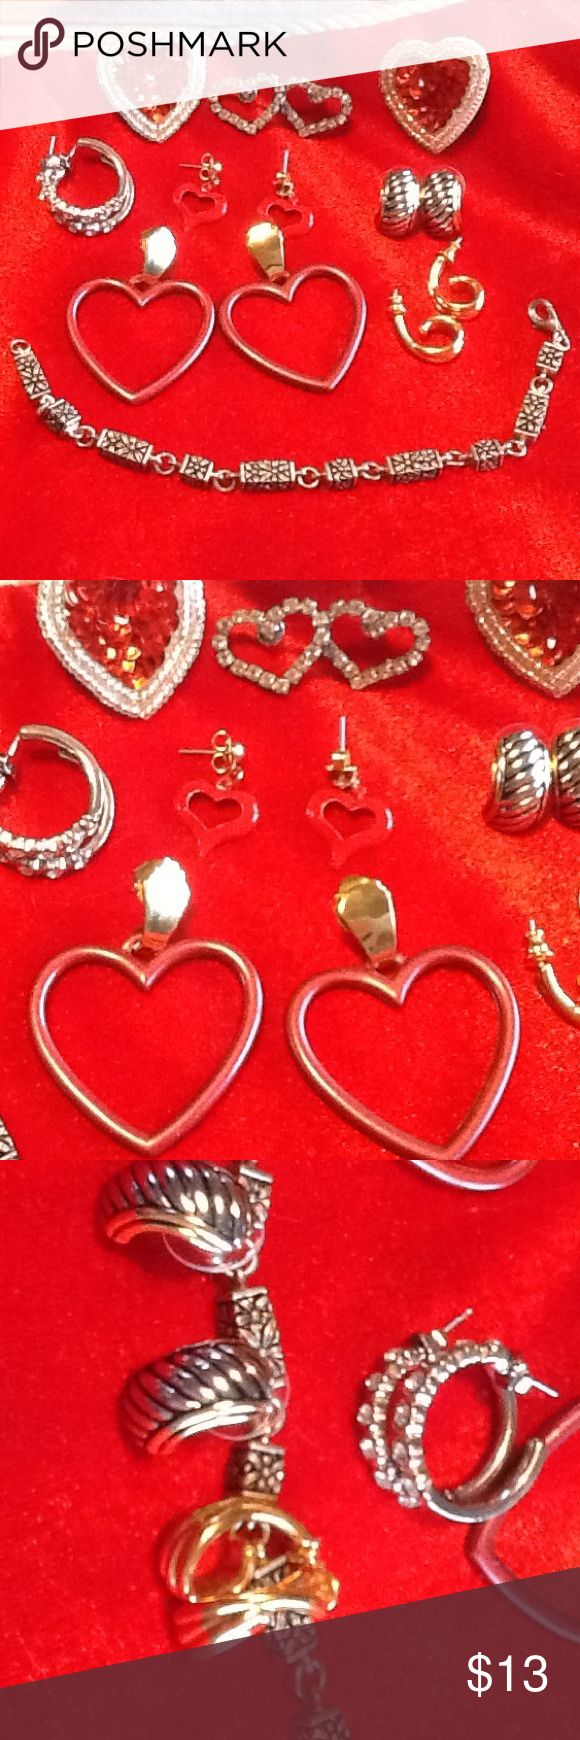 Valentine's earrings& bracelet package A mix of a large pair of red/mauve color heart earrings with gold plate, old silver rhinestone hearts, small red hearts, and a large pair of red sequin silver heart earrings.  This includes a silver loop earrings with circular rhinestones, a pair of costume gold earrings, and a pair of silver, gold, and black background earrings.  This comes with a 7 inch bracelet with floral box etching.  Most of these items were truly never worn! Jewelry Earrings